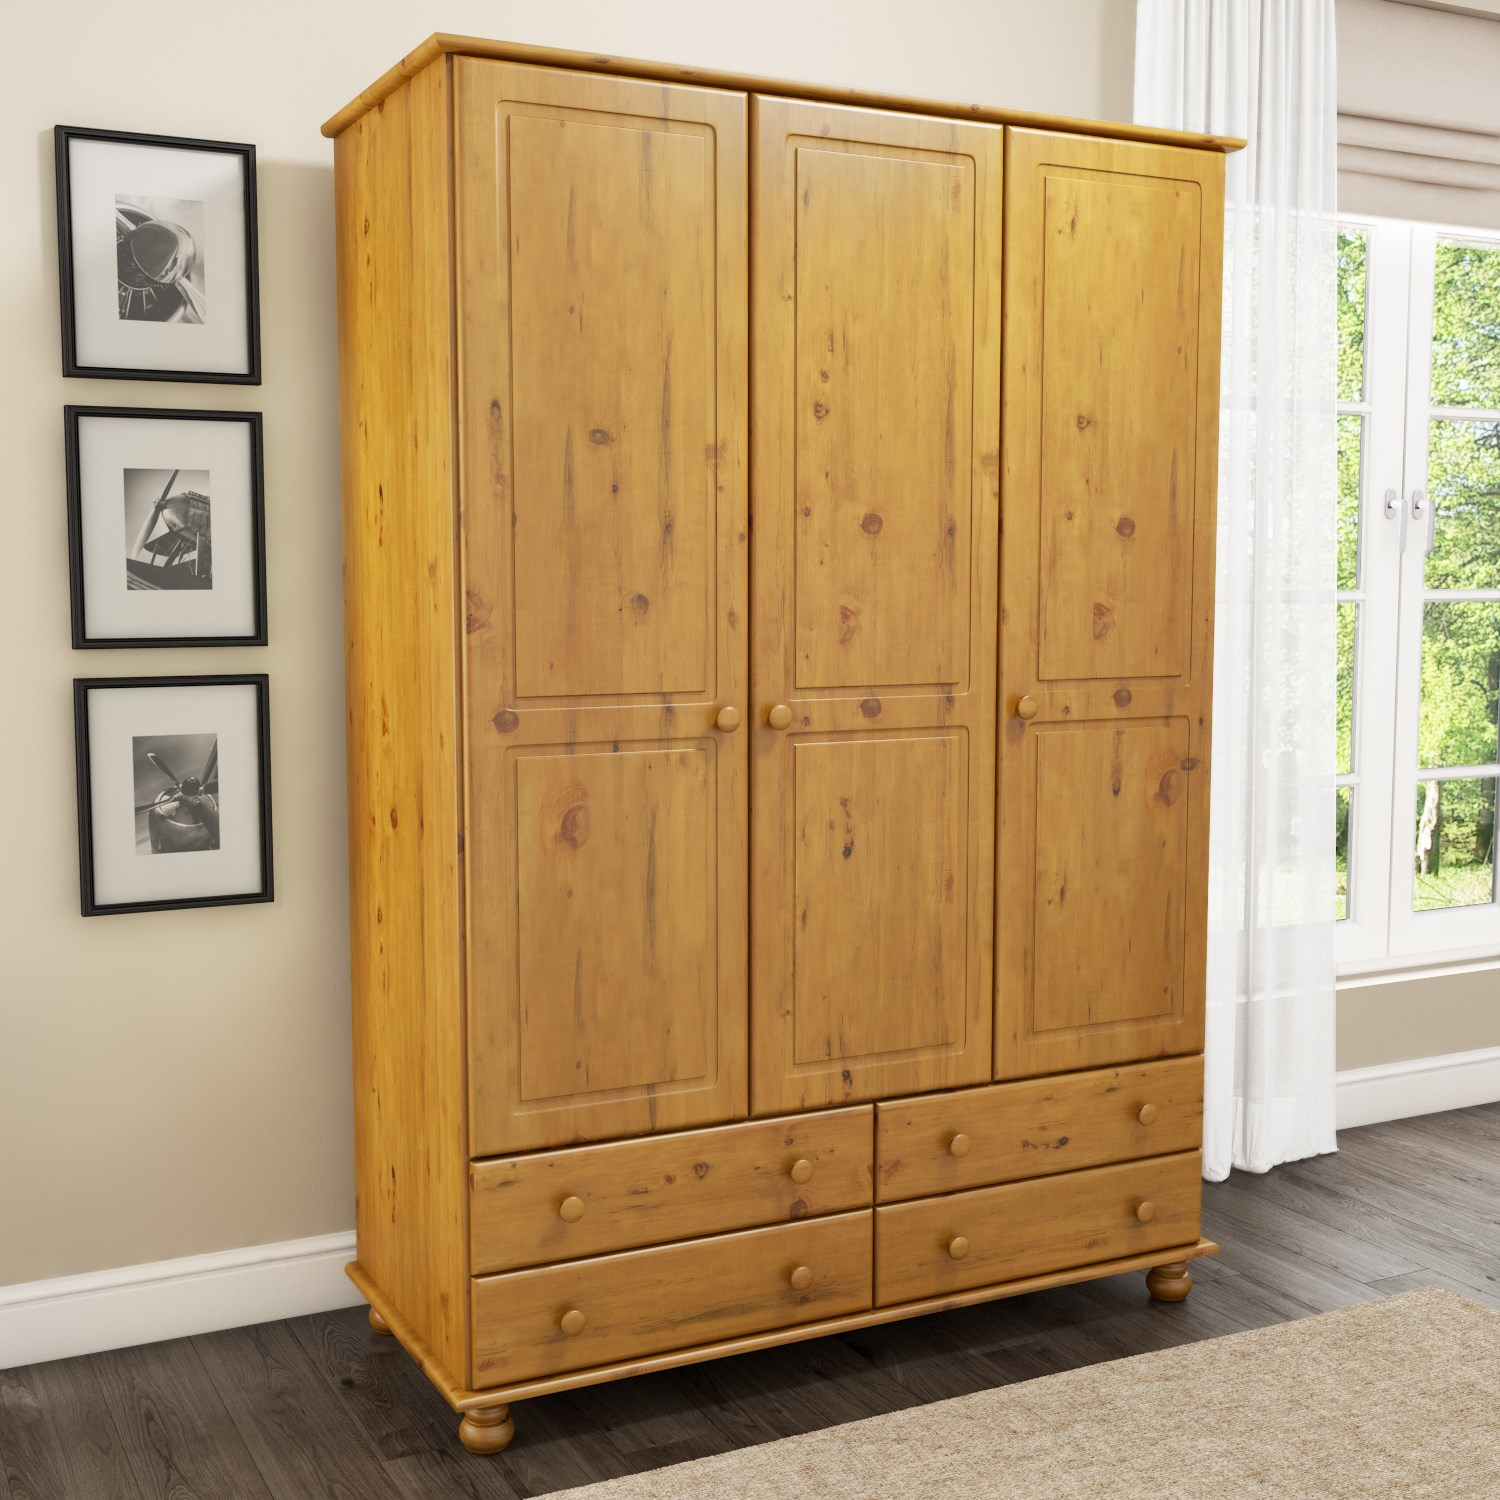 Pine Wardrobes – A choice of Rustic Style and Durability